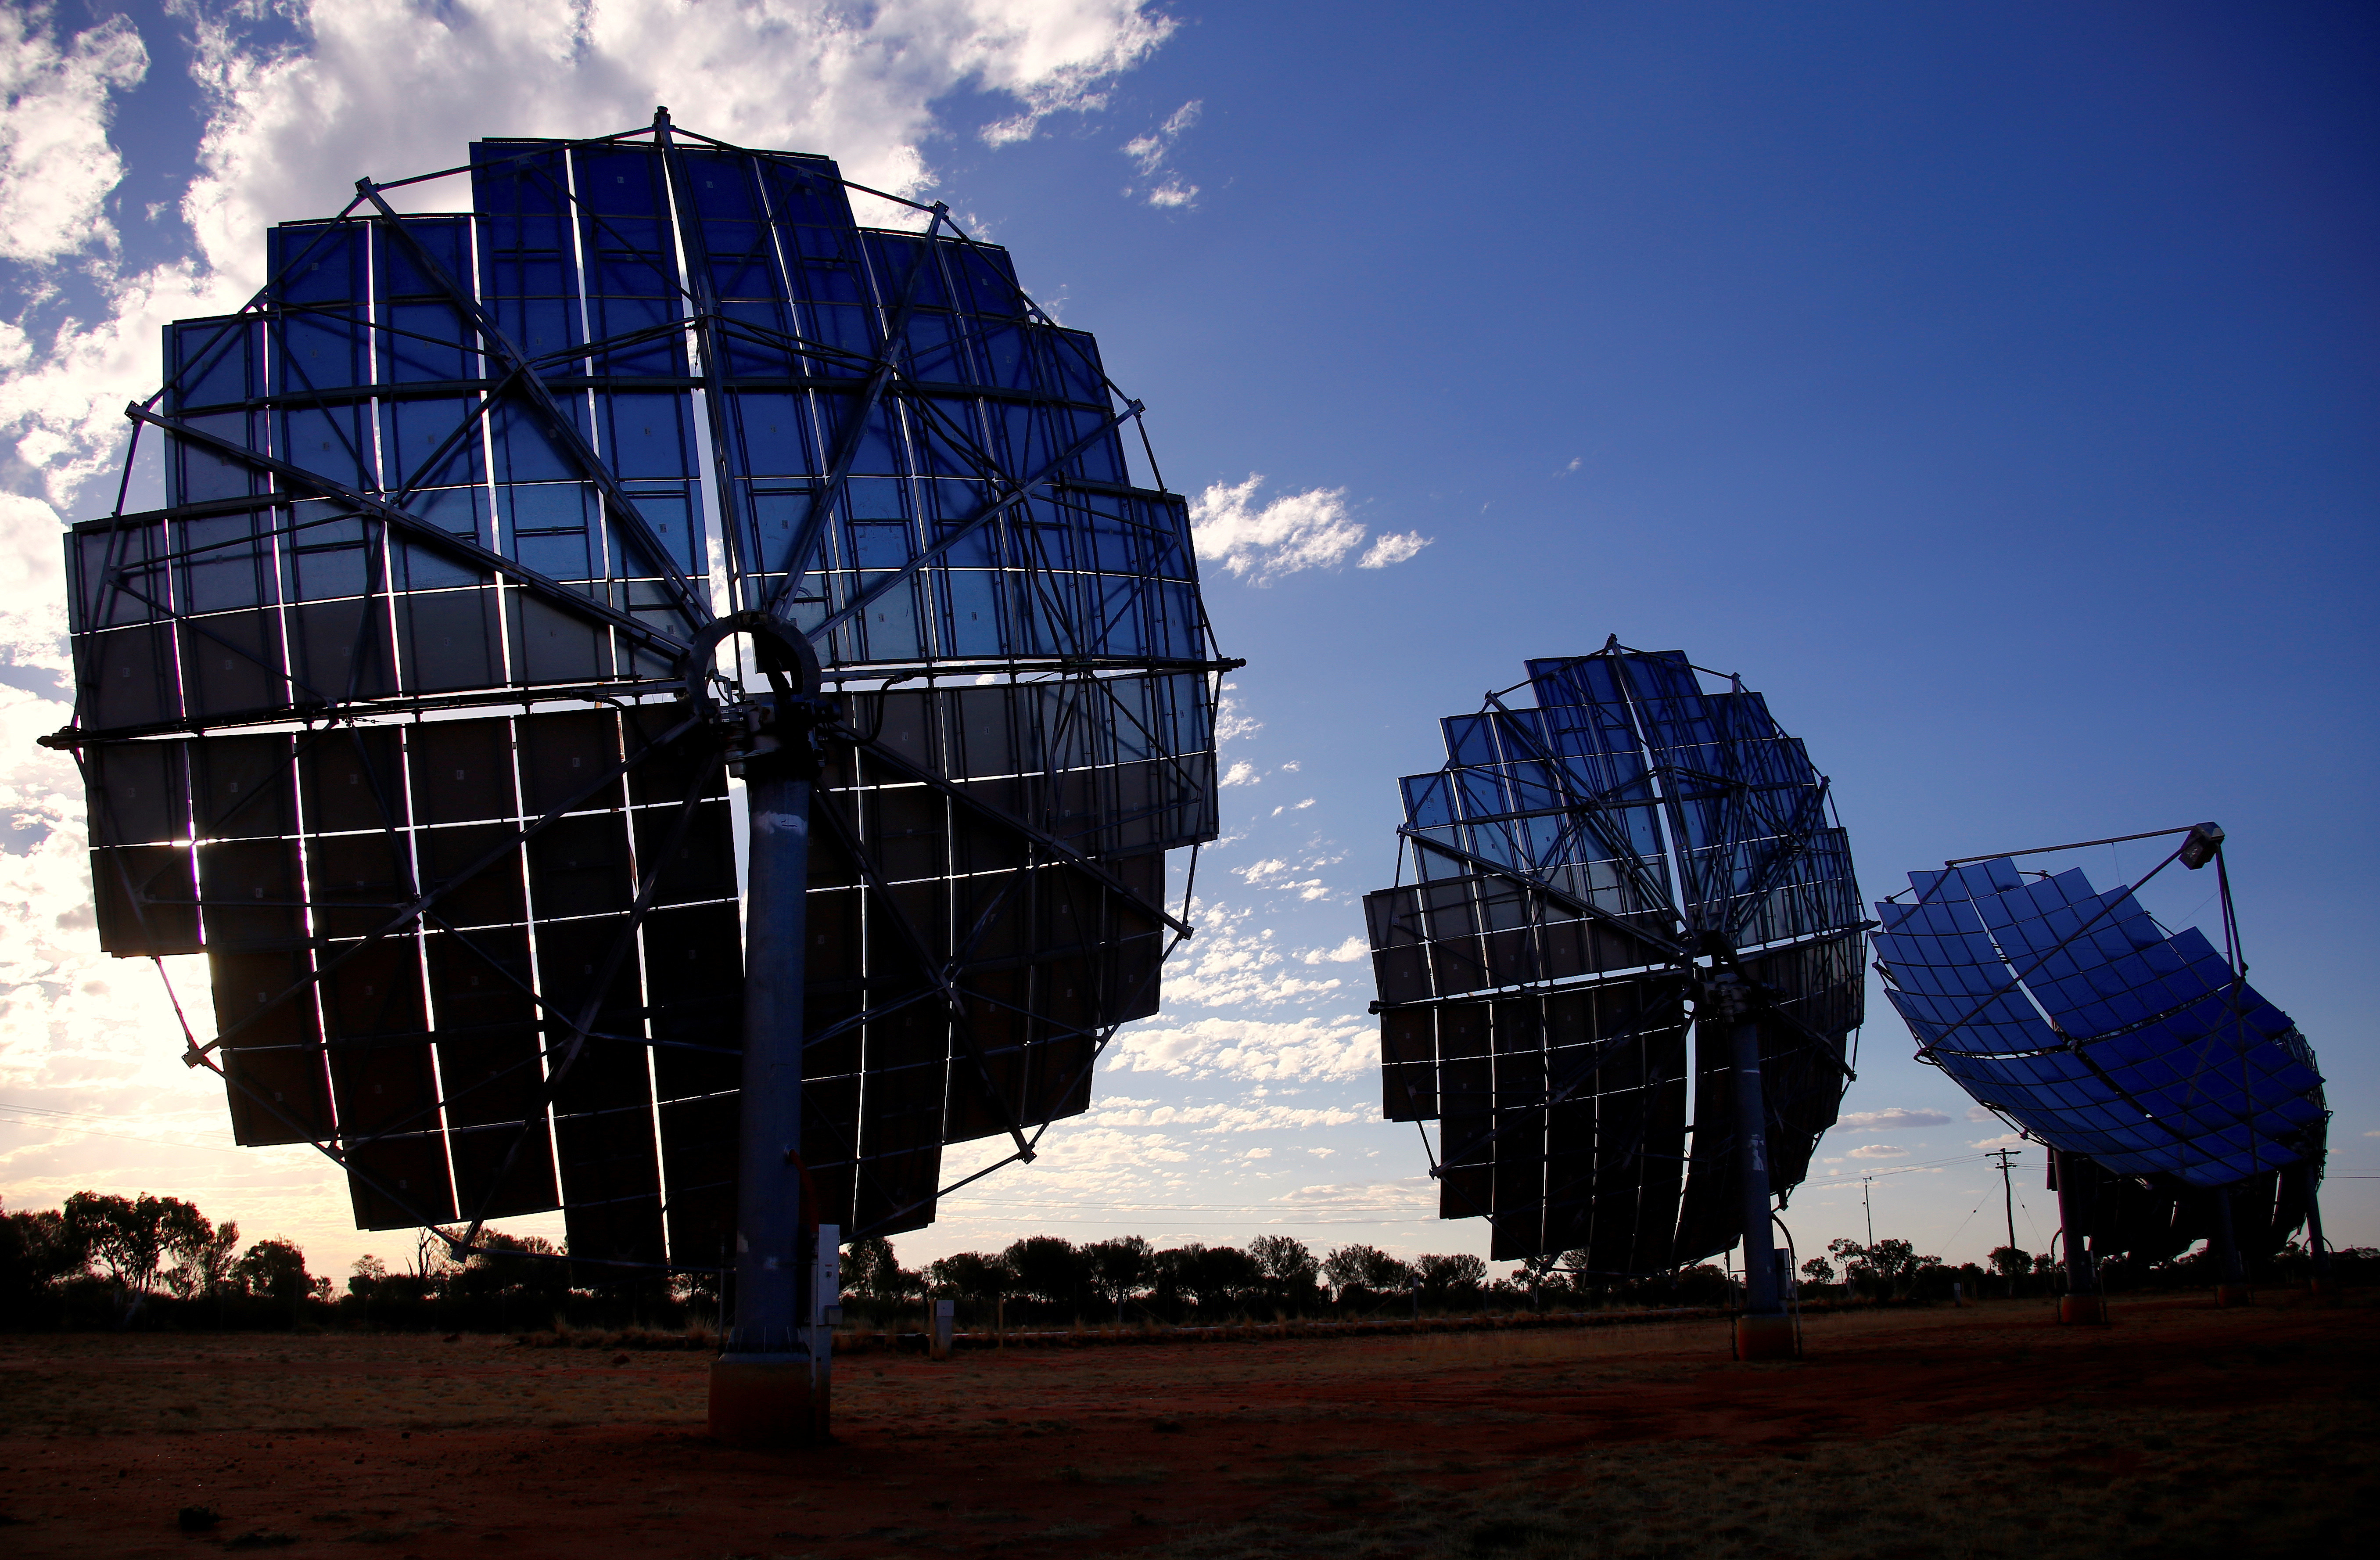 Solar power is now the cheapest source of electricity in history.